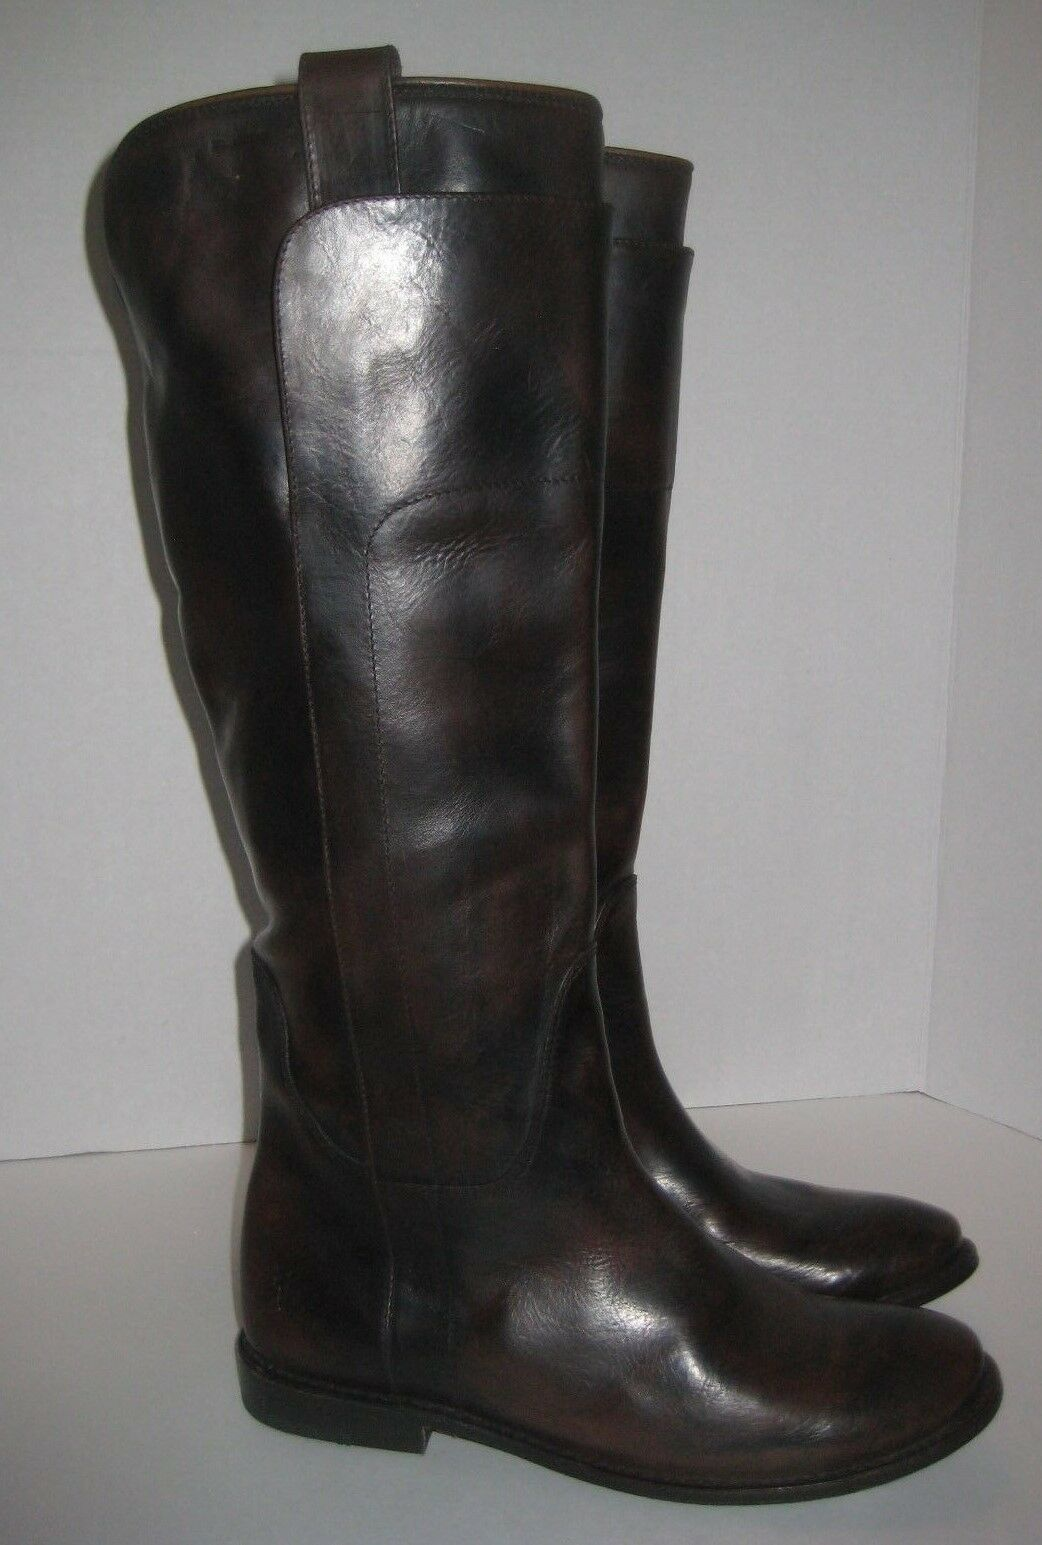 FRYE PAIGE TALL RIDING BOOTS DARK BROWN WOMEN'S SIZE 6.5